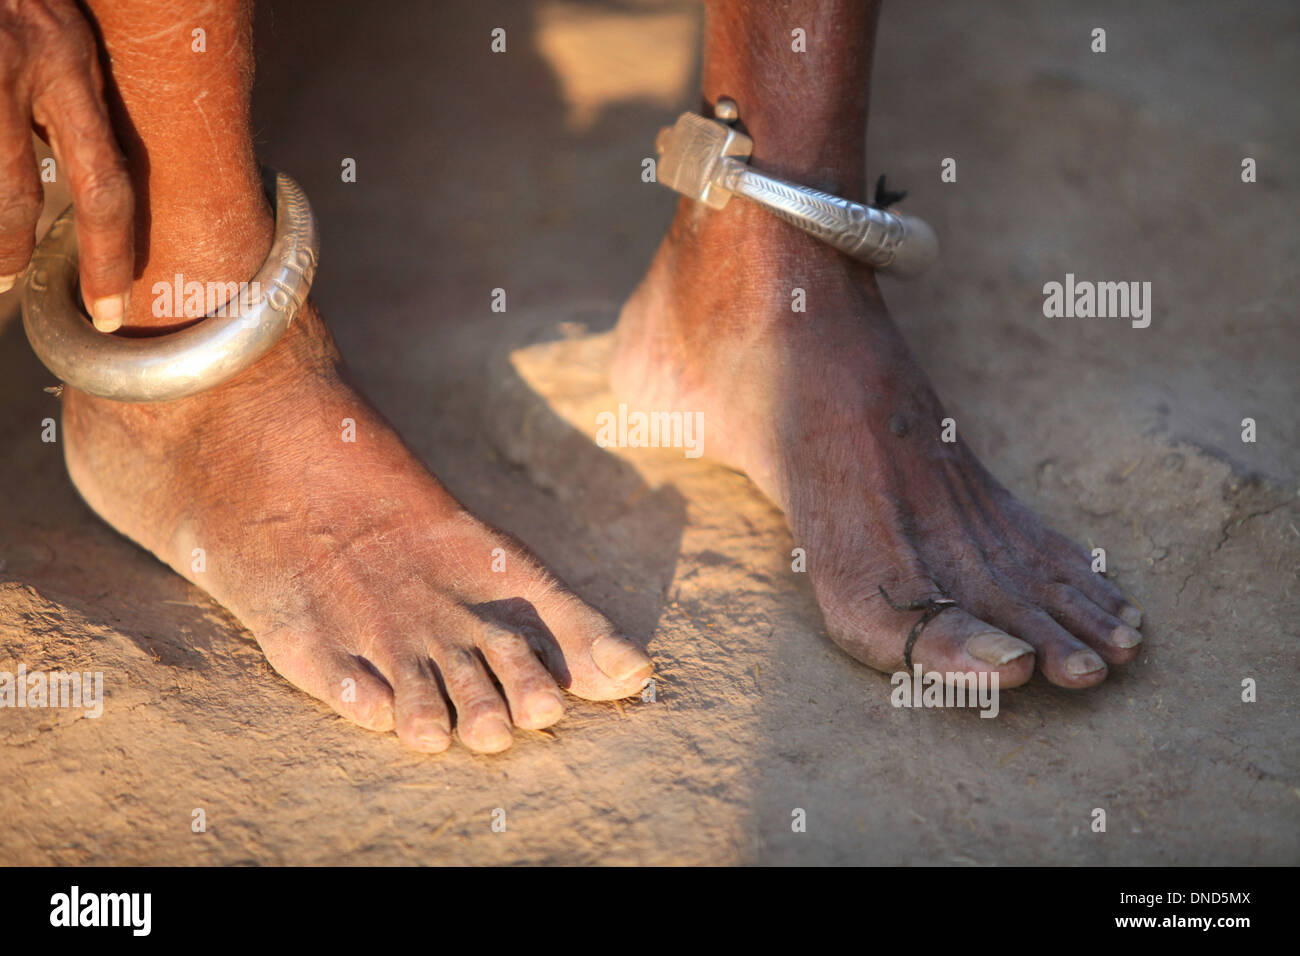 Bangles on feet. Bhil tribe, Madhya Pradesh, India - Stock Image